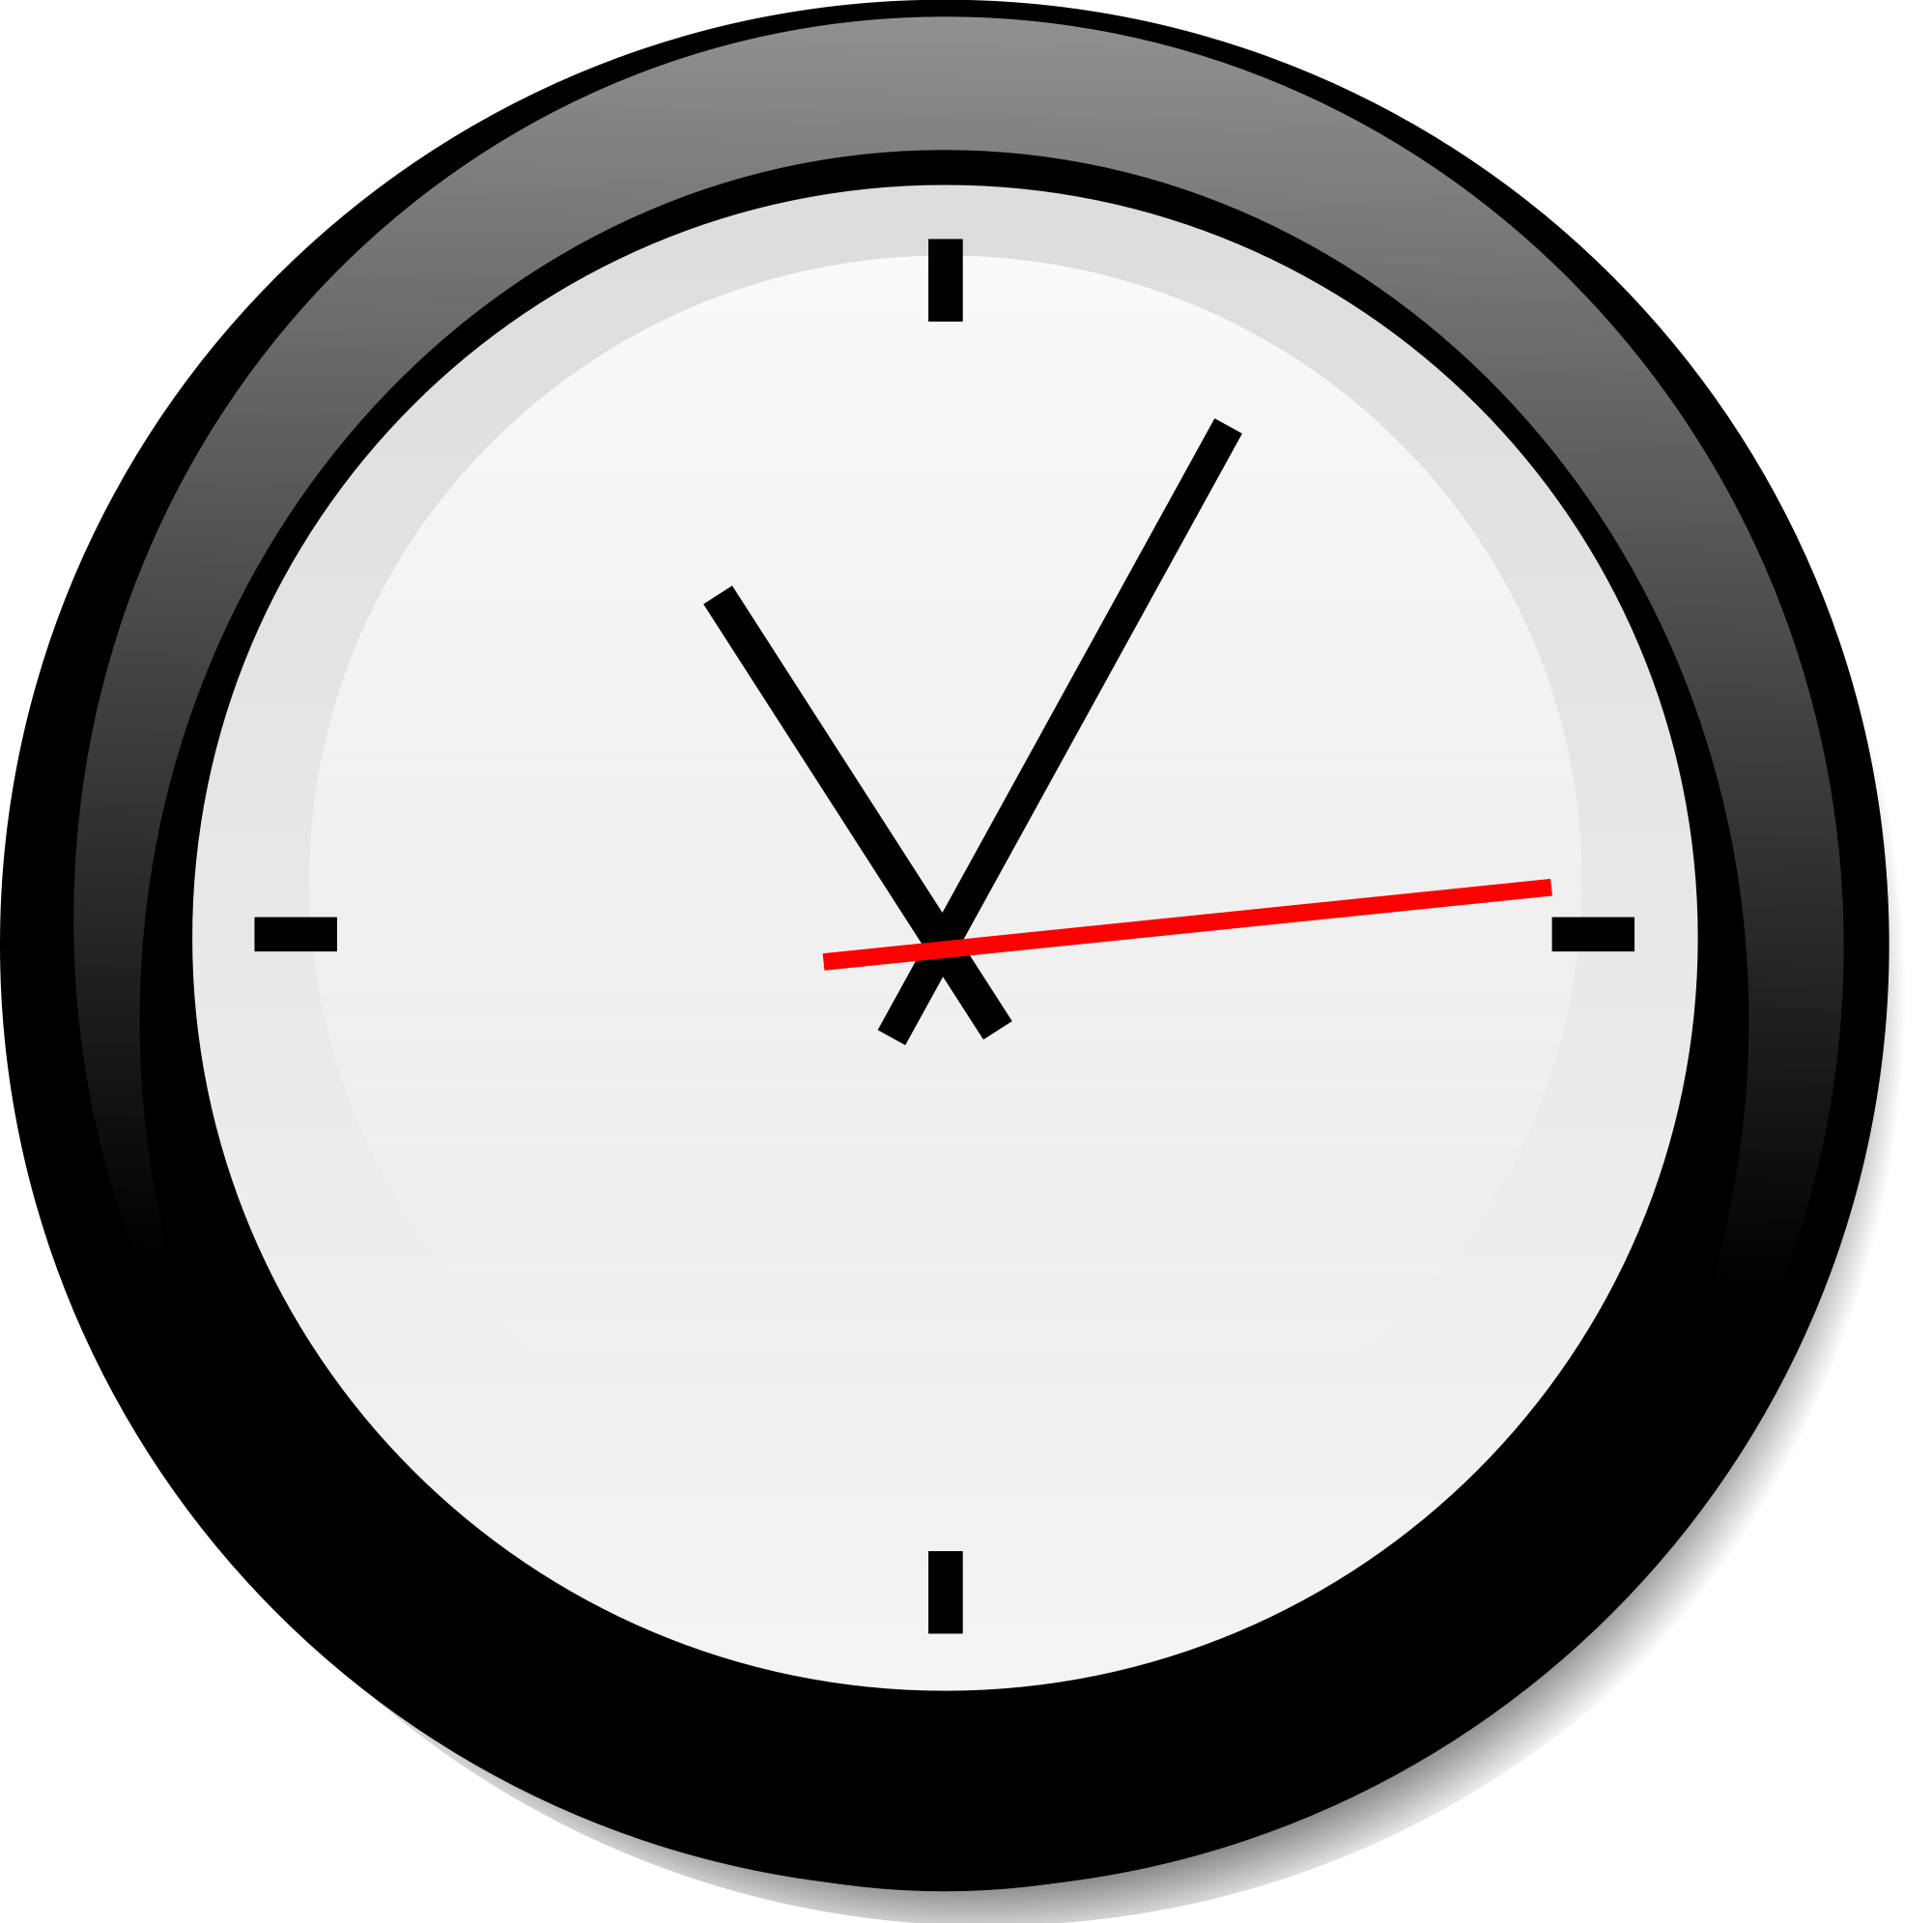 Clock during while english. Clocks clipart 6 am